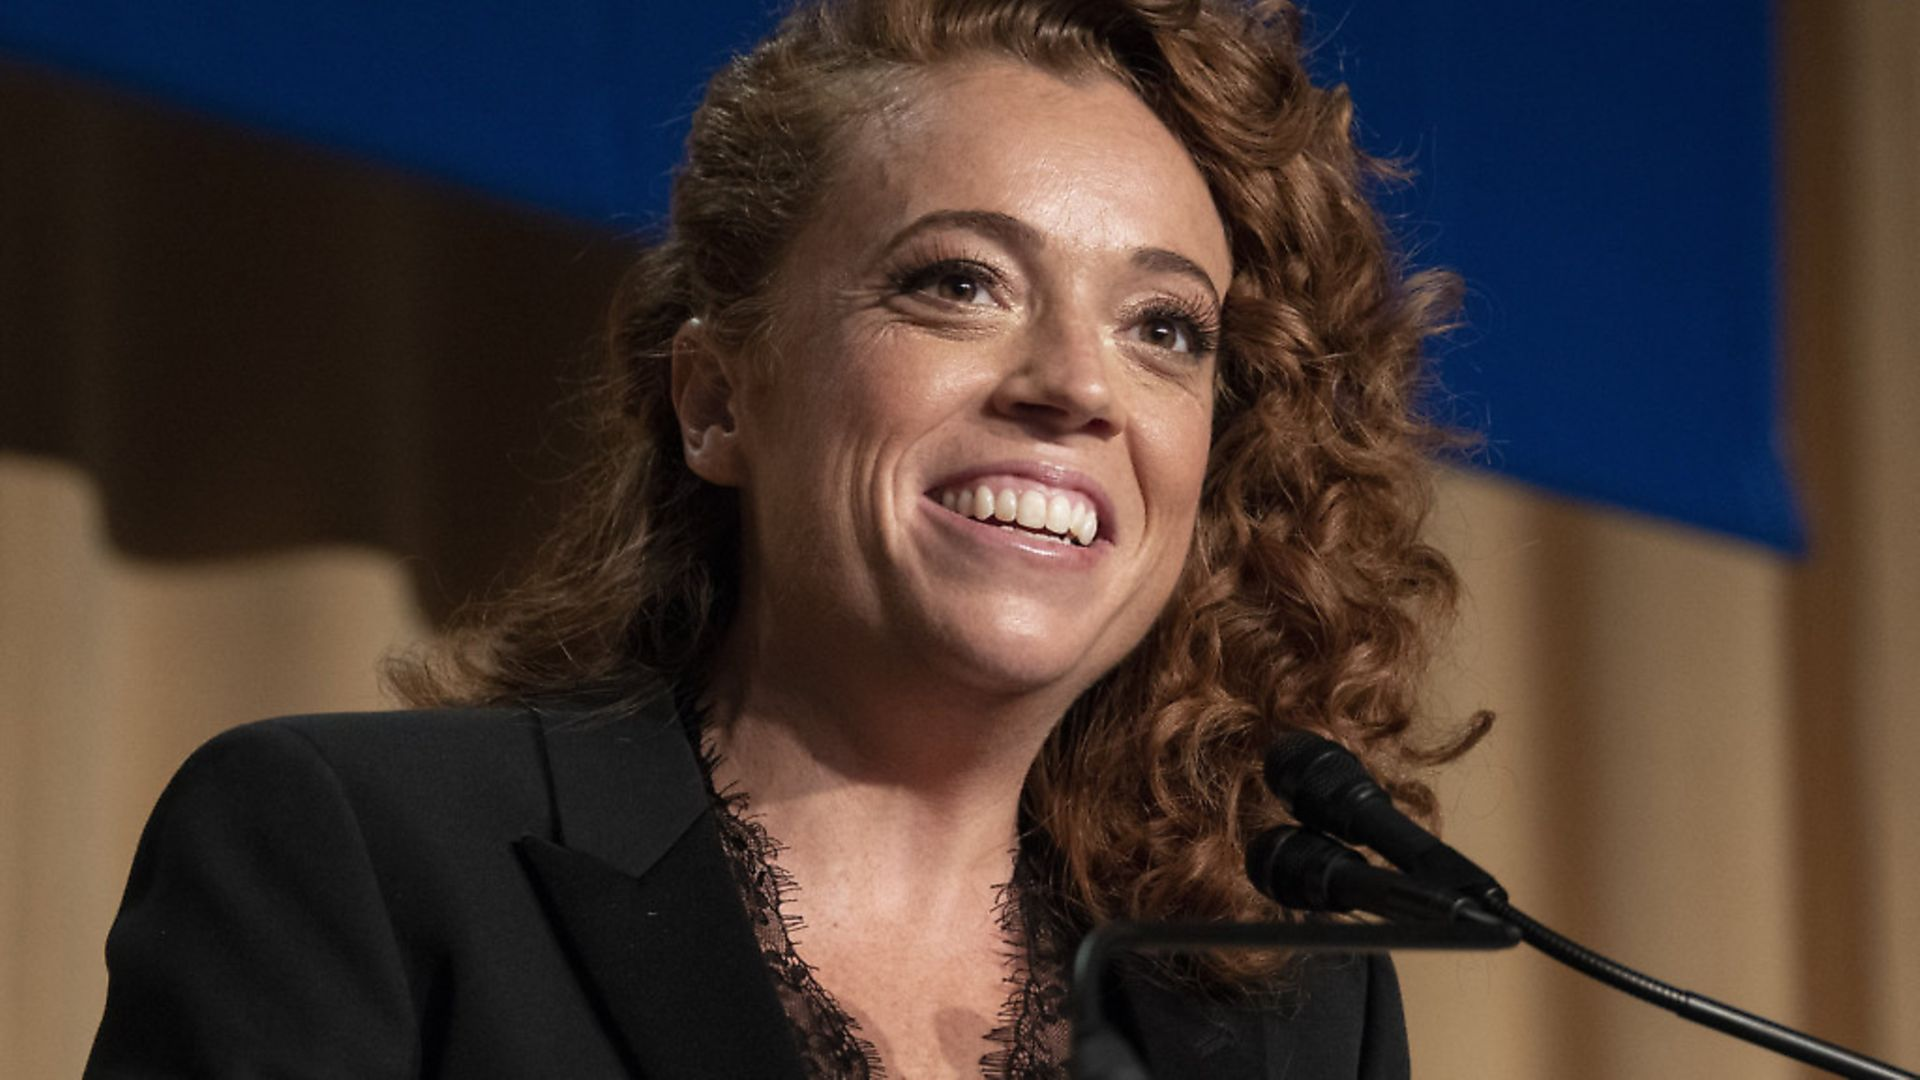 Michelle Wolf at the 2018 White House Correspondents Association Annual Dinner at the Washington Hilton Hotel. Photo by Ron Sachs/CNP/ABACAPRESS.COM - Credit: ABACA/PA Images